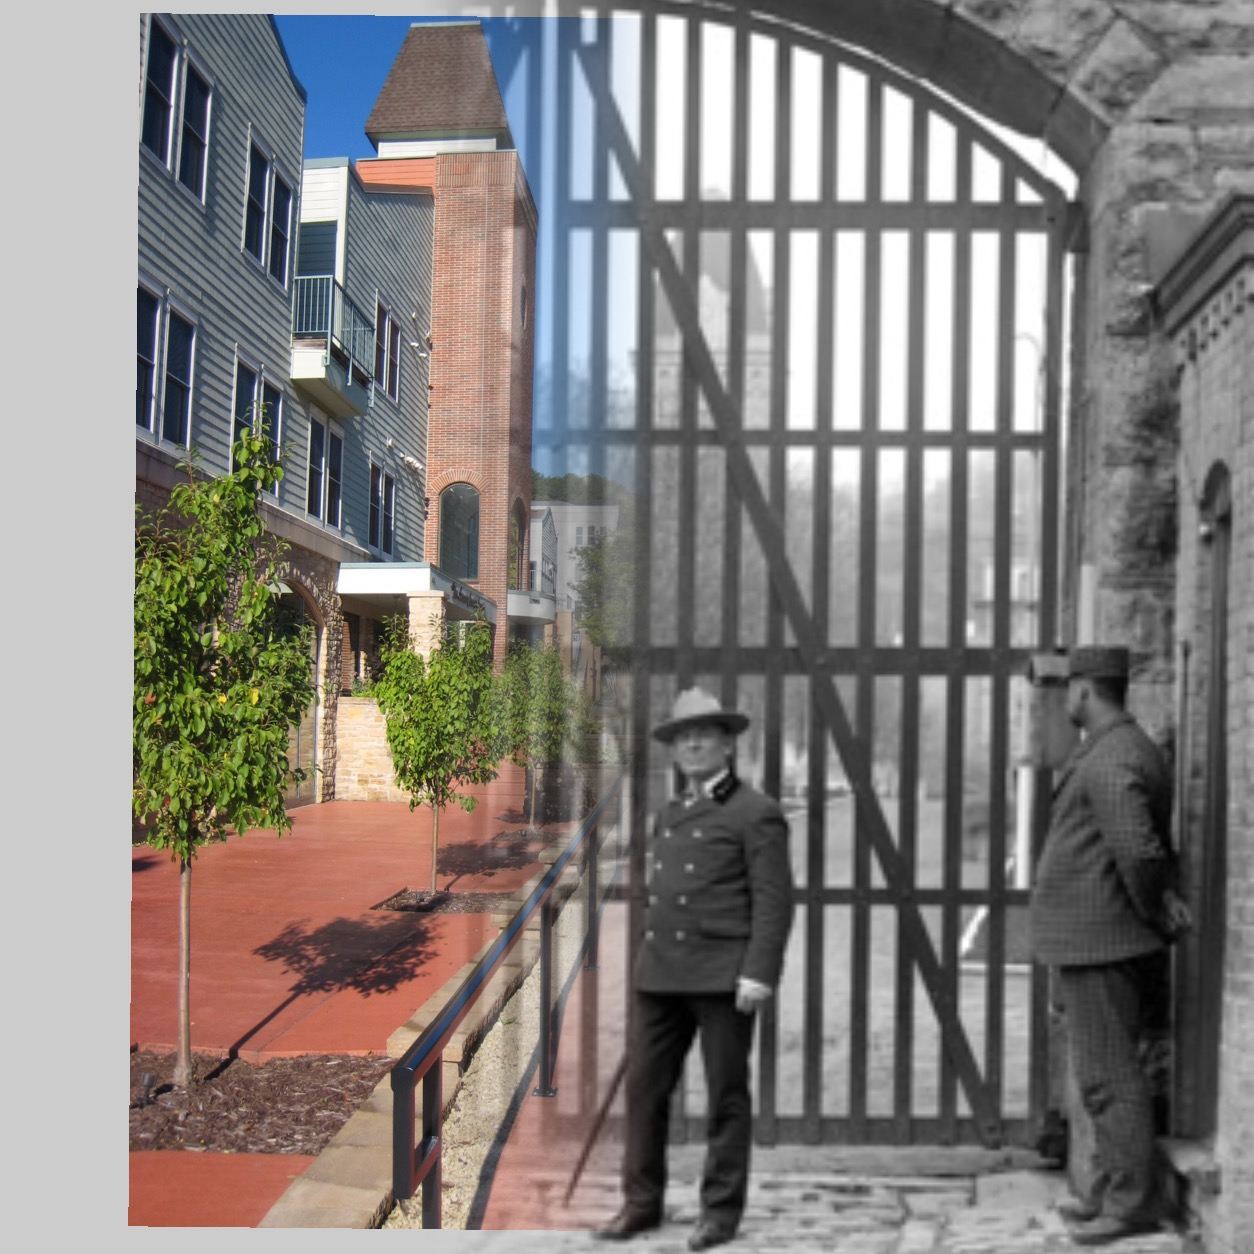 """""""Time-Tunnel"""" photo morph that takes you on a journey from 2016 to 1907 at the same location in Stillwater. The towers in the 2016 part of the photo are in the exact location as the original towers in the prison. Today, this location is home to Terra Springs Conodominiums.  Photo credit is Mr. John Runk for the historical photo, courtesy of The Stillwater Public Library and R.Molenda for the 2016 photo."""